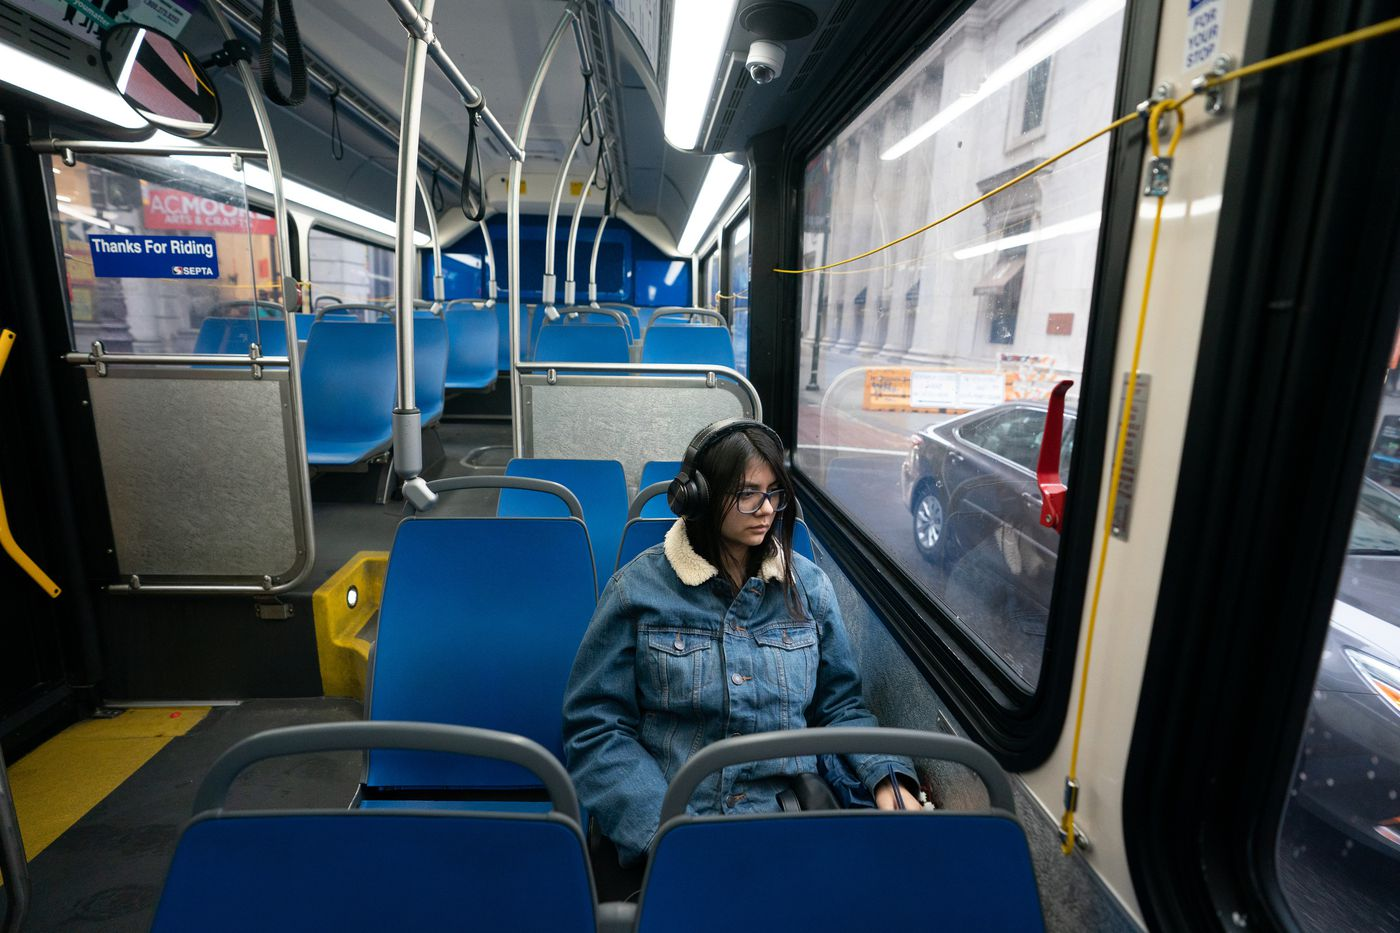 Deanna Garrido rides on a nearly empty bus down Chestnut Street on her way to work, in Philadelphia, March 17, 2020. The coronavirus has been spreading across the globe since January, and now has been identified in the Philadelphia region.